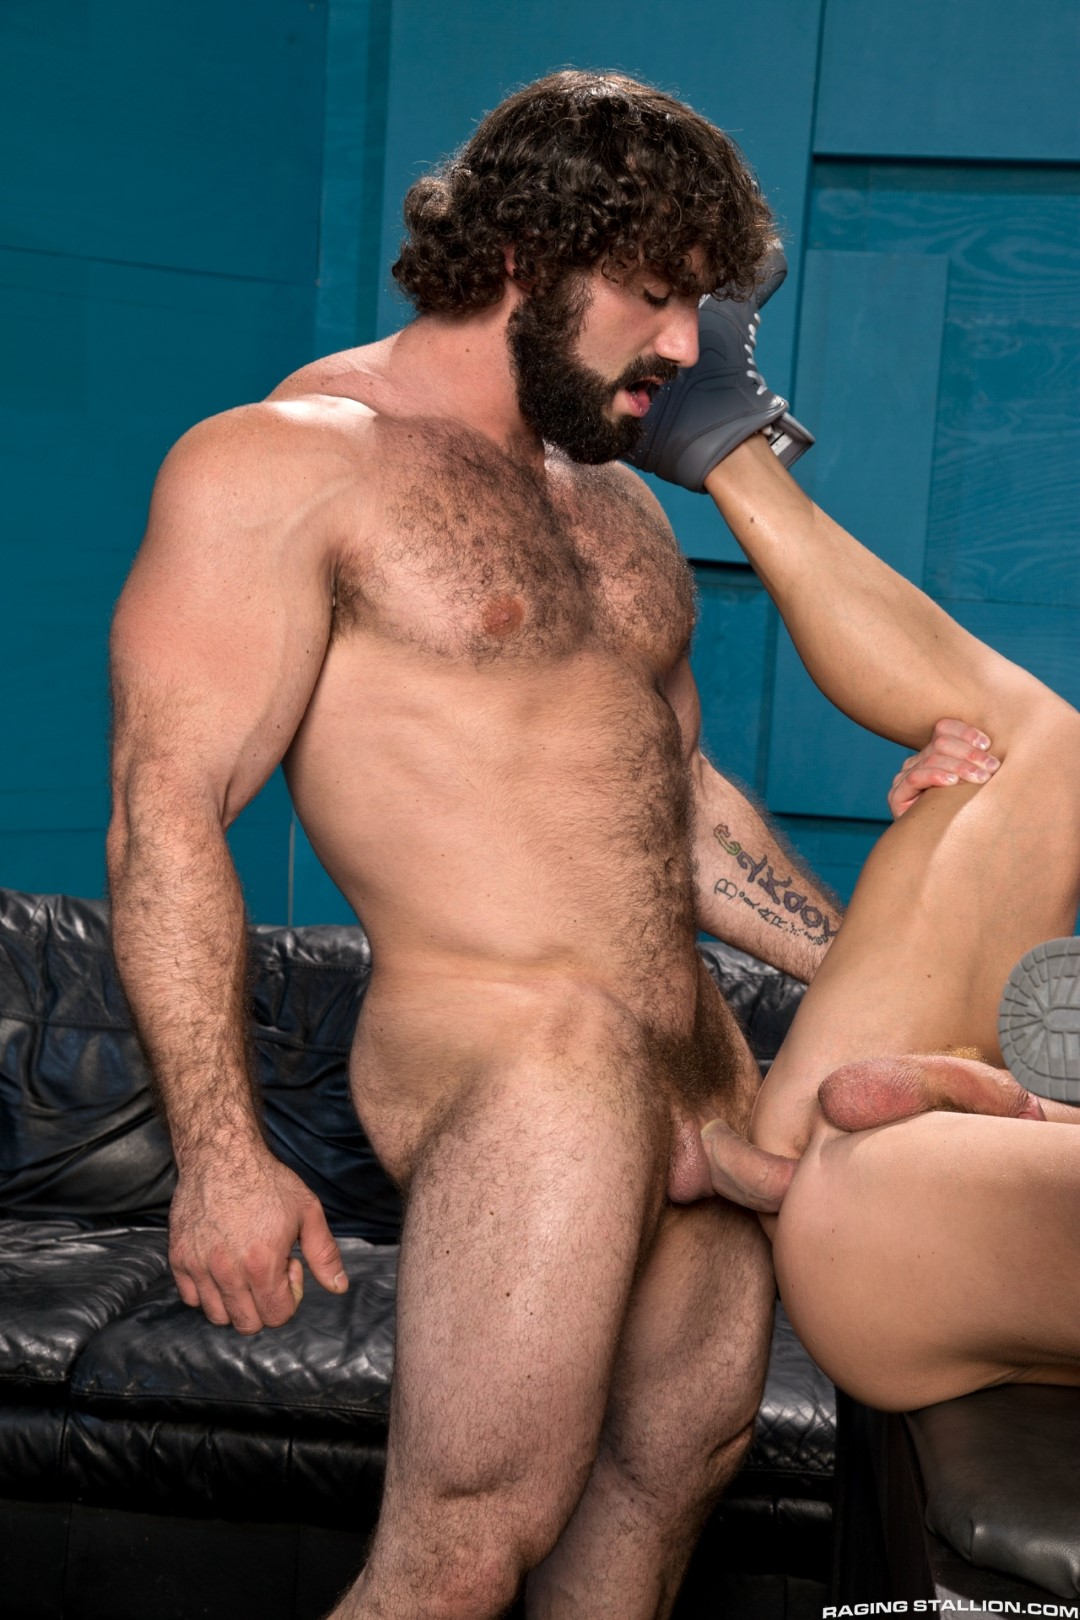 Raging Stallion Johnny V and Jaxton Wheeler Hairy Muscle Hunk Fucking Amateur Gay Porn 12 Hairy Muscle Hunk Jaxton Wheeler Fucking A Muscle Jock